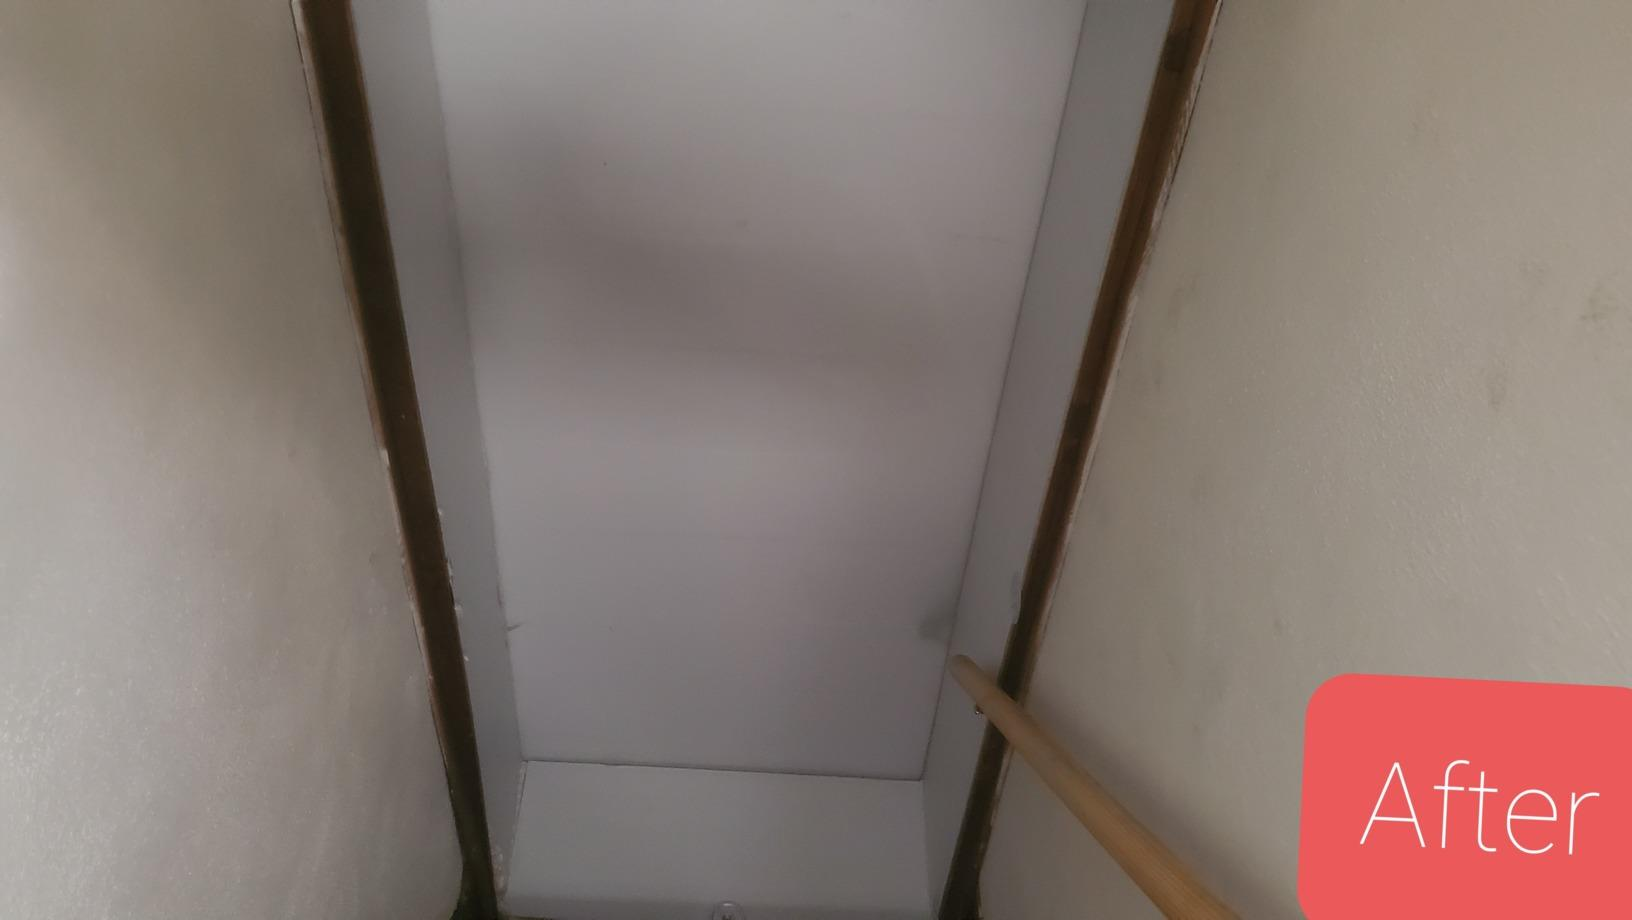 Attic Hatch Peoria, IL - After Photo